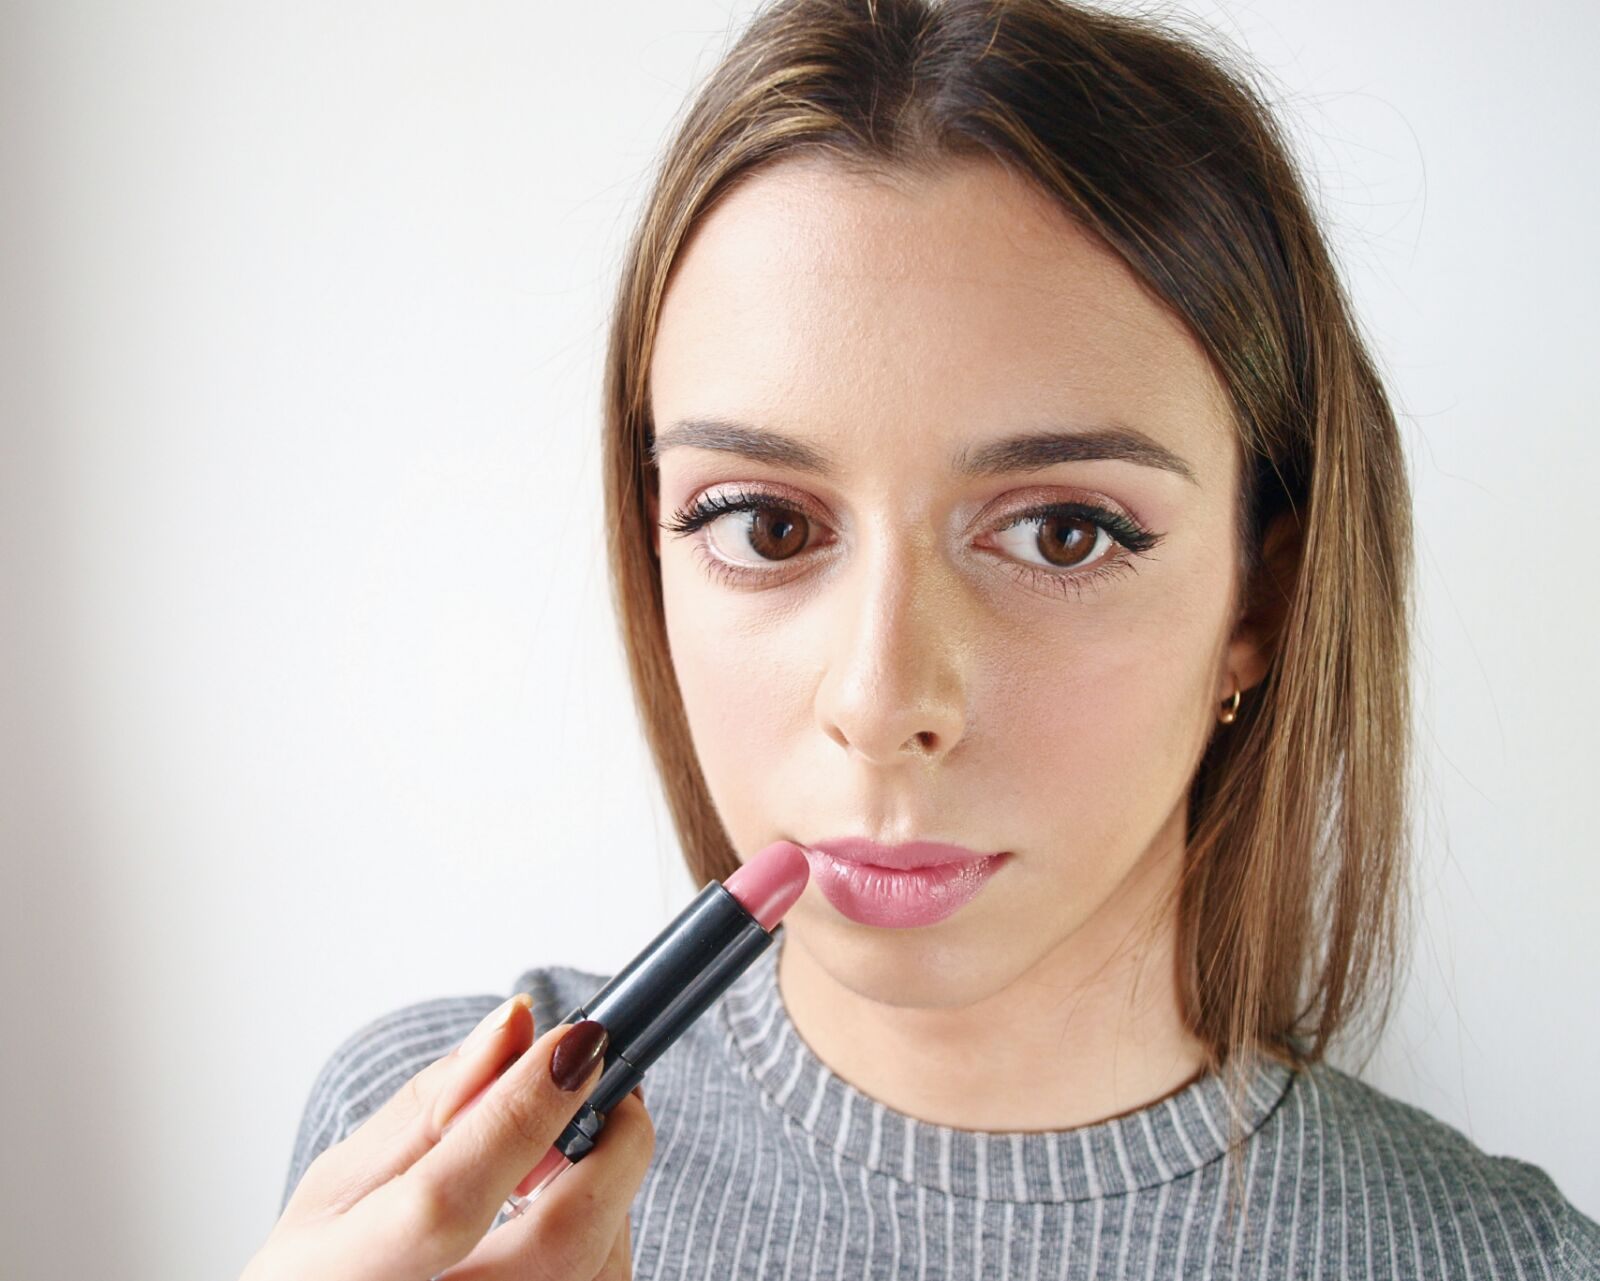 coastalandco-blog-blogger-hendaye-irene-valentinday-makeup-tutorial-maquillage-saintvalentin-pink-lips-dior-sephora-mac-nars-tutoriel-romantic